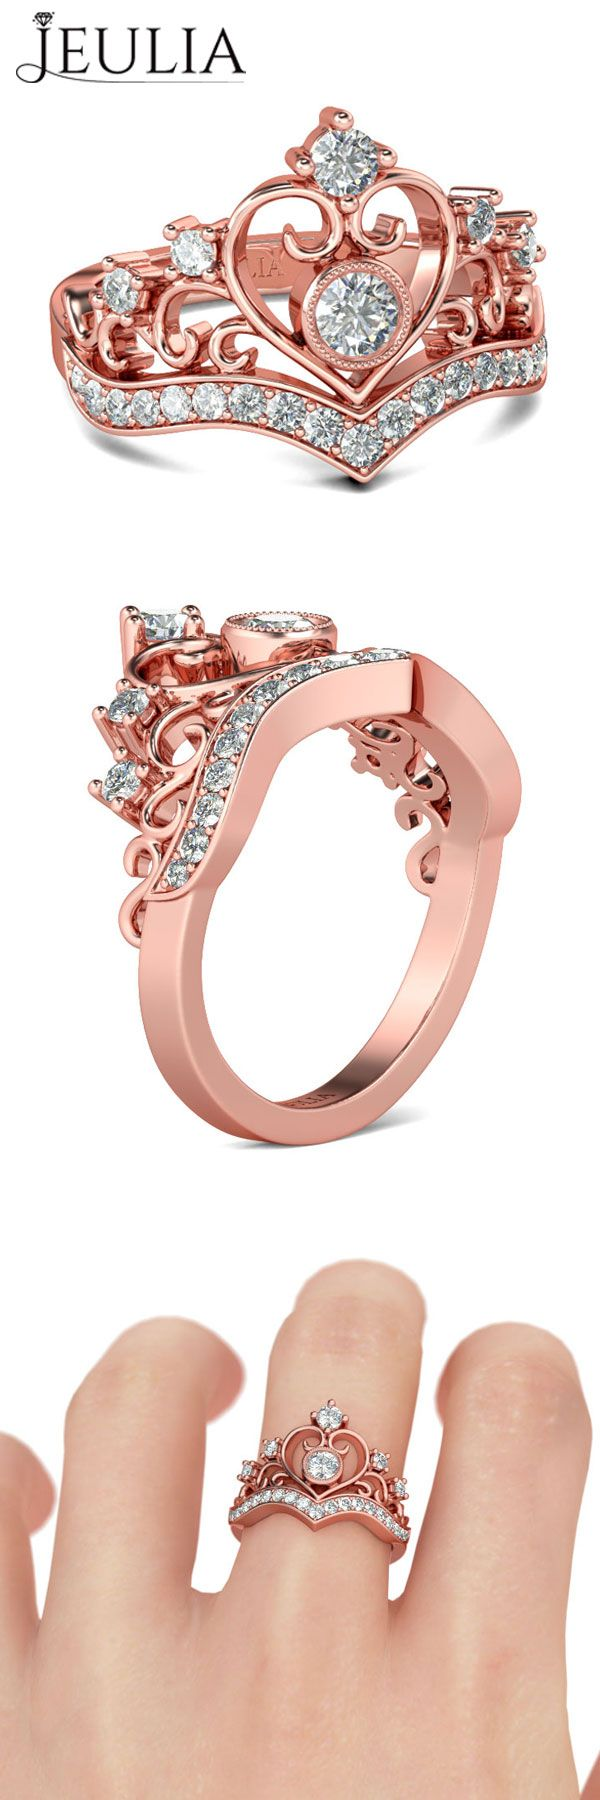 best fashion ring images on pinterest